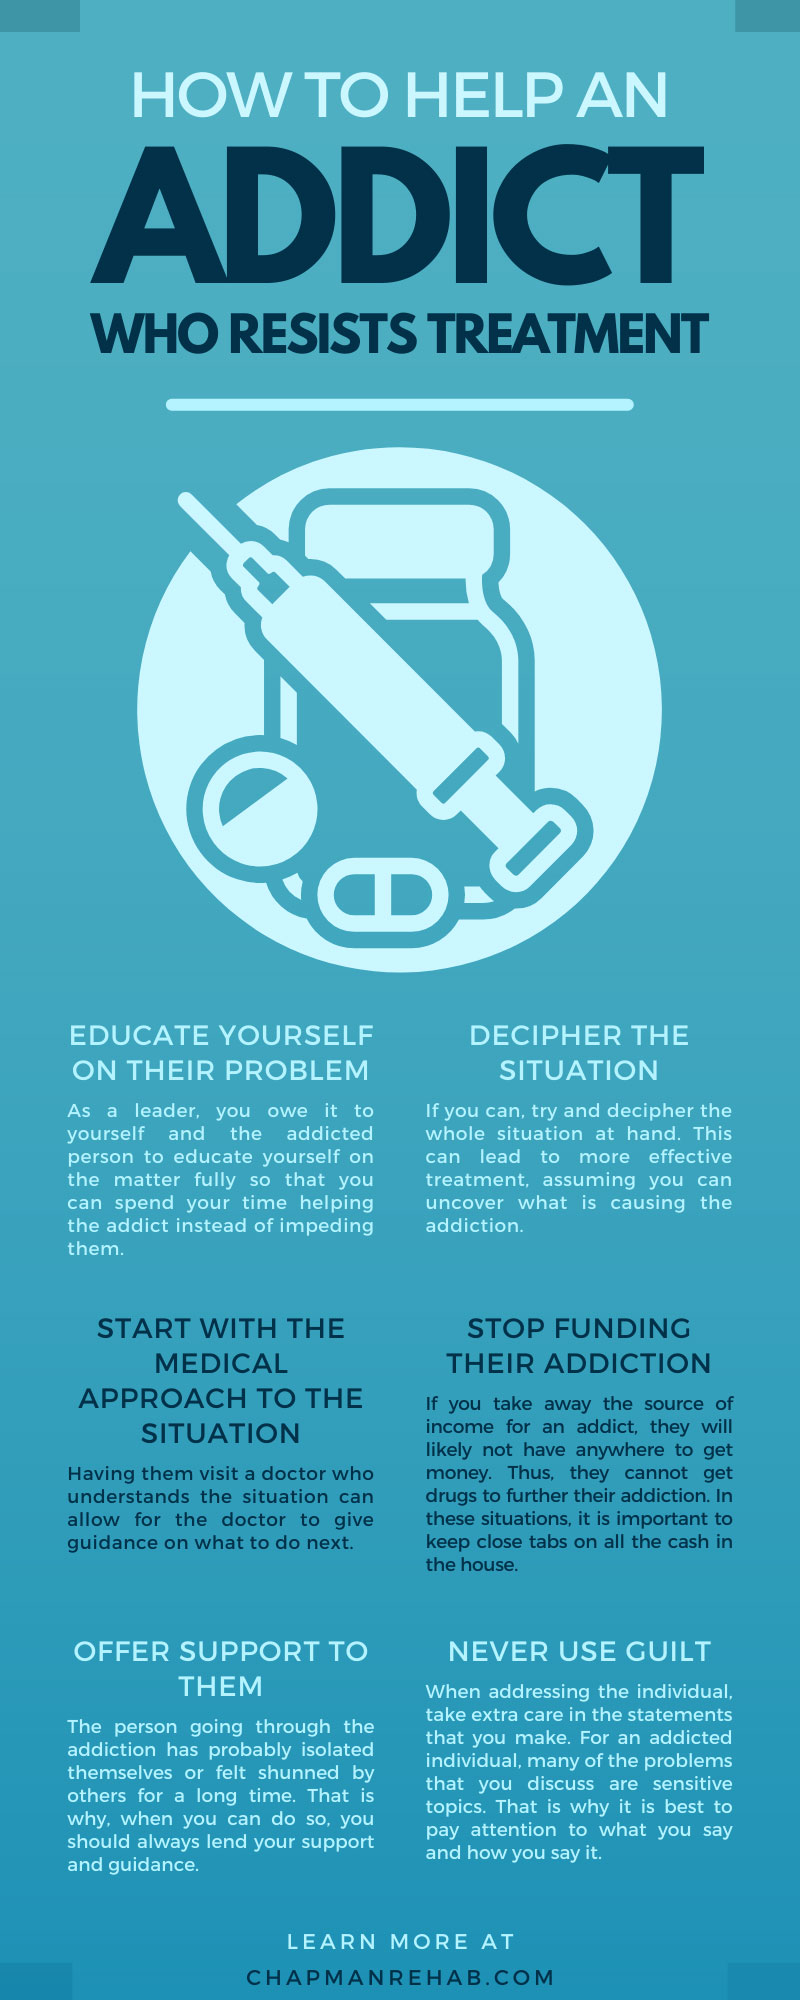 How To Help an Addict Who Resists Treatment